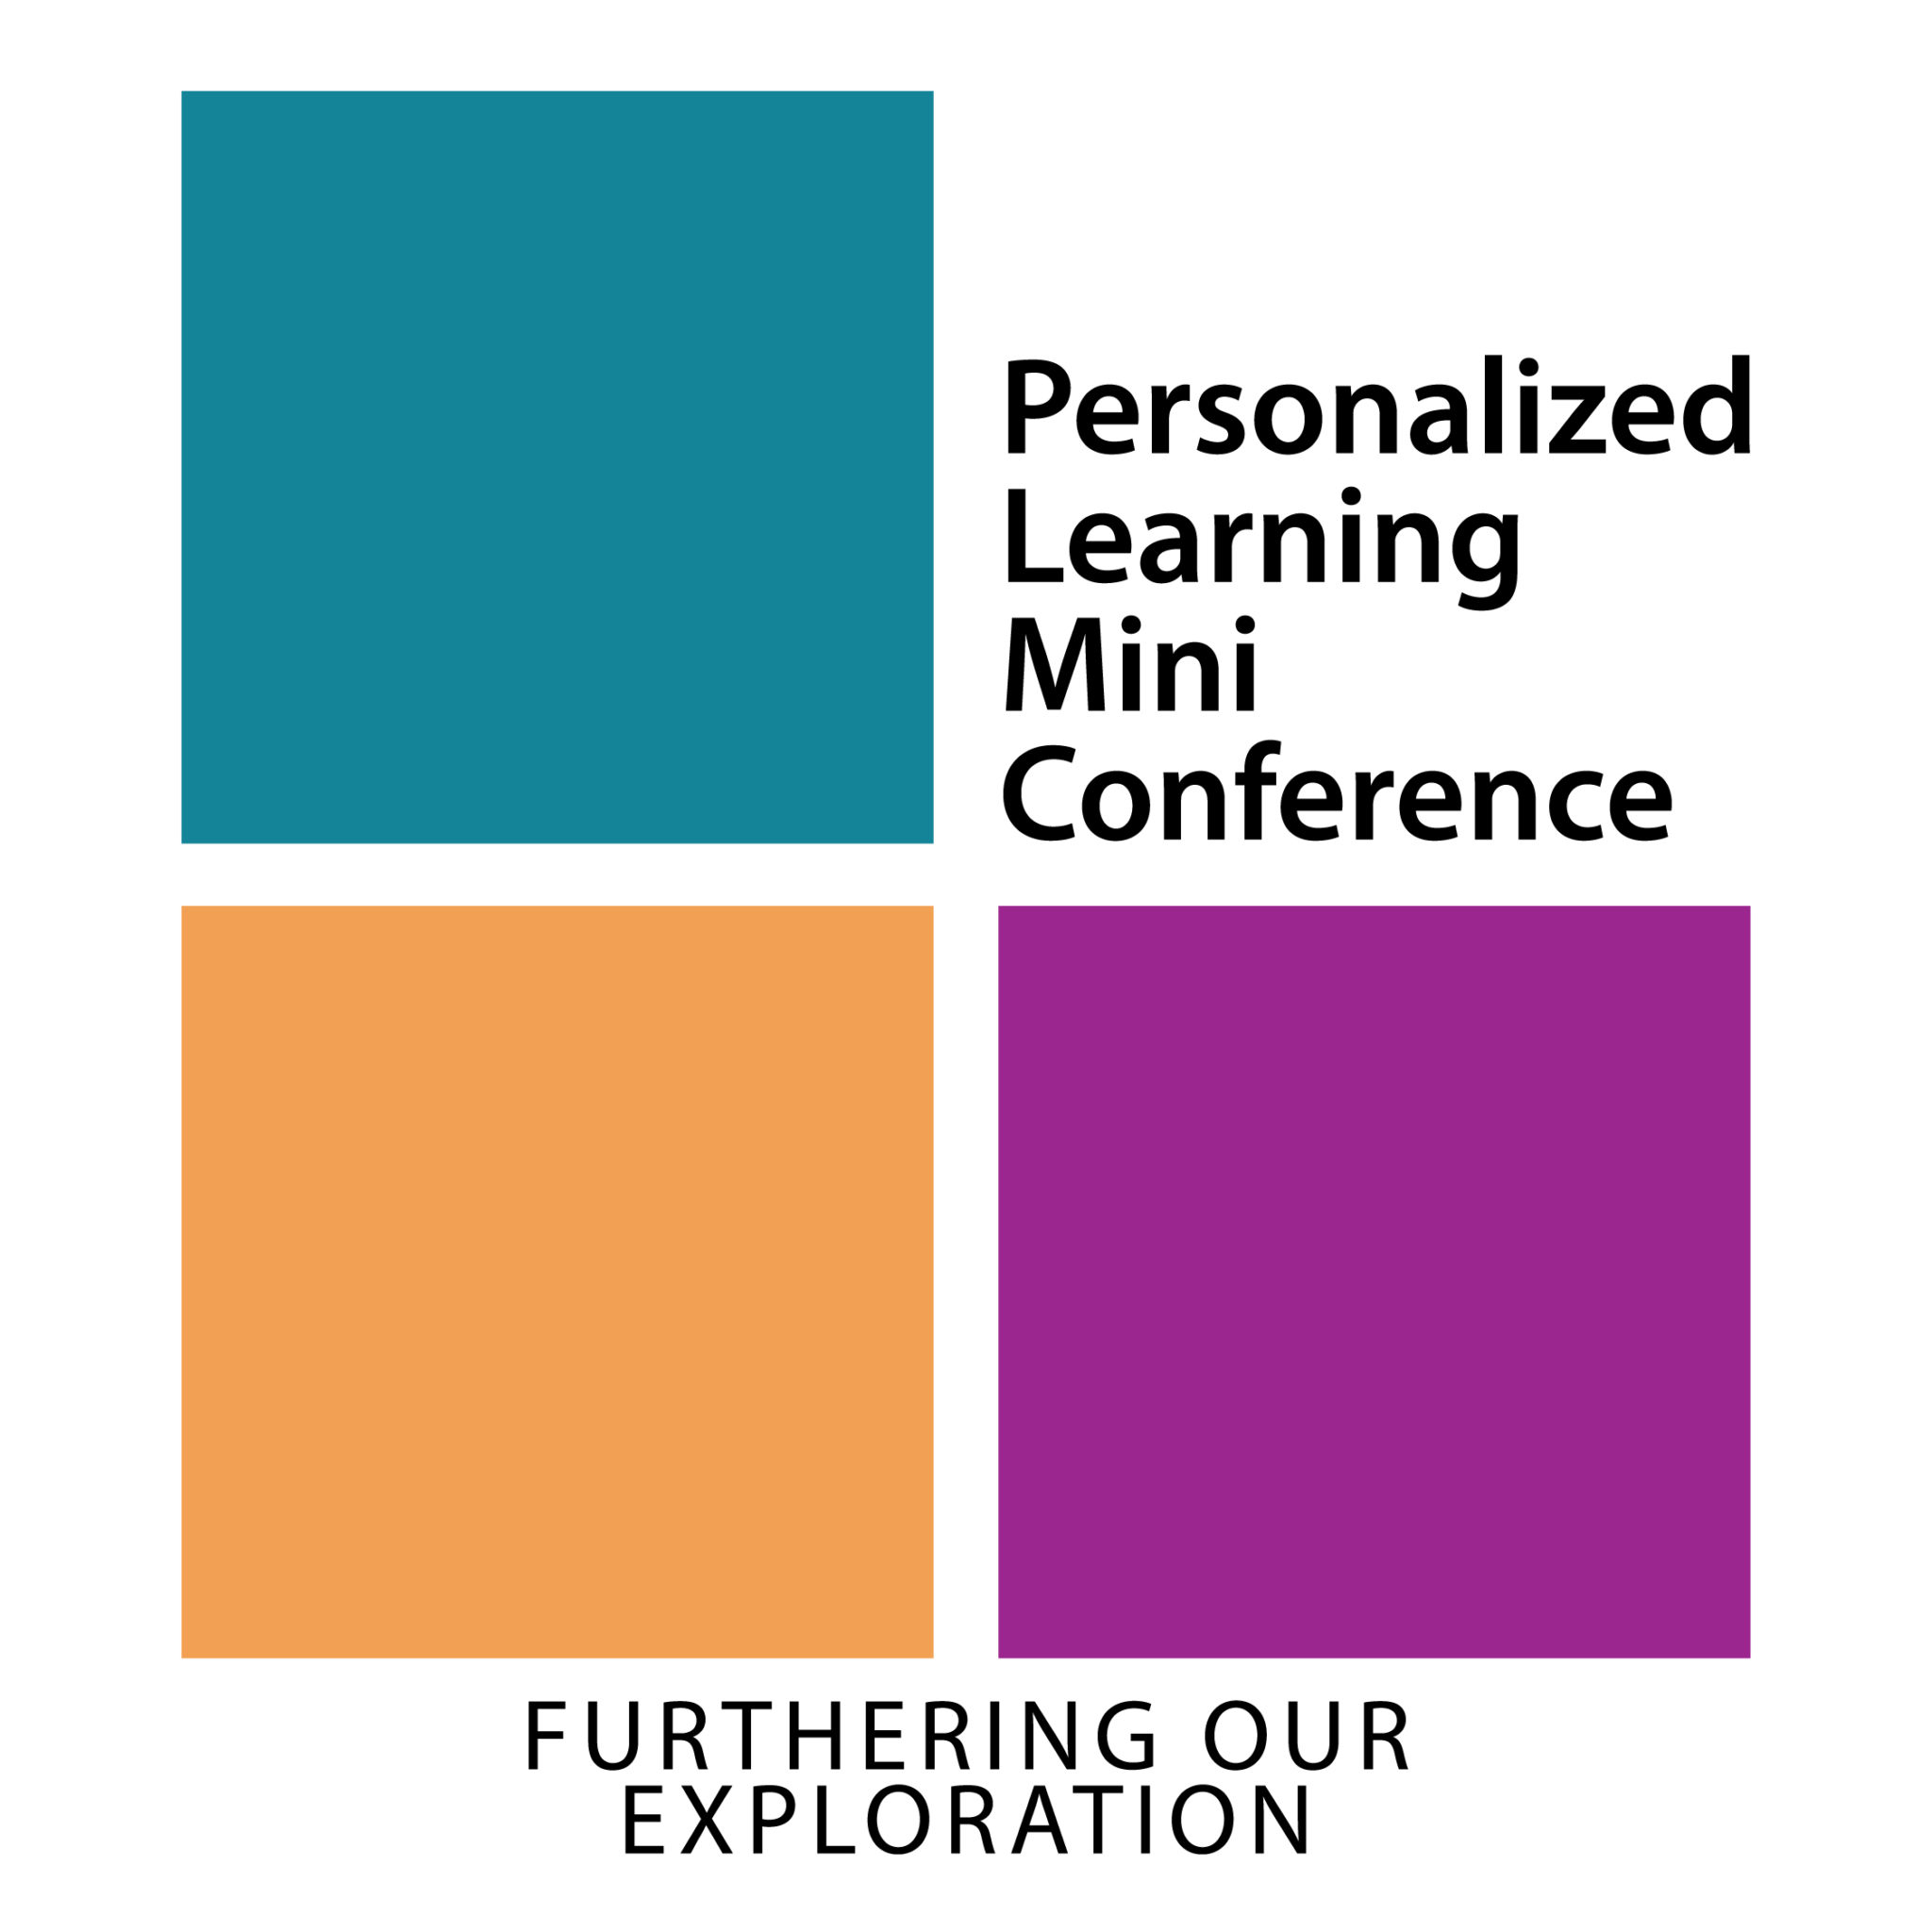 Save the Date for the Personalized Learning Mini-Conference